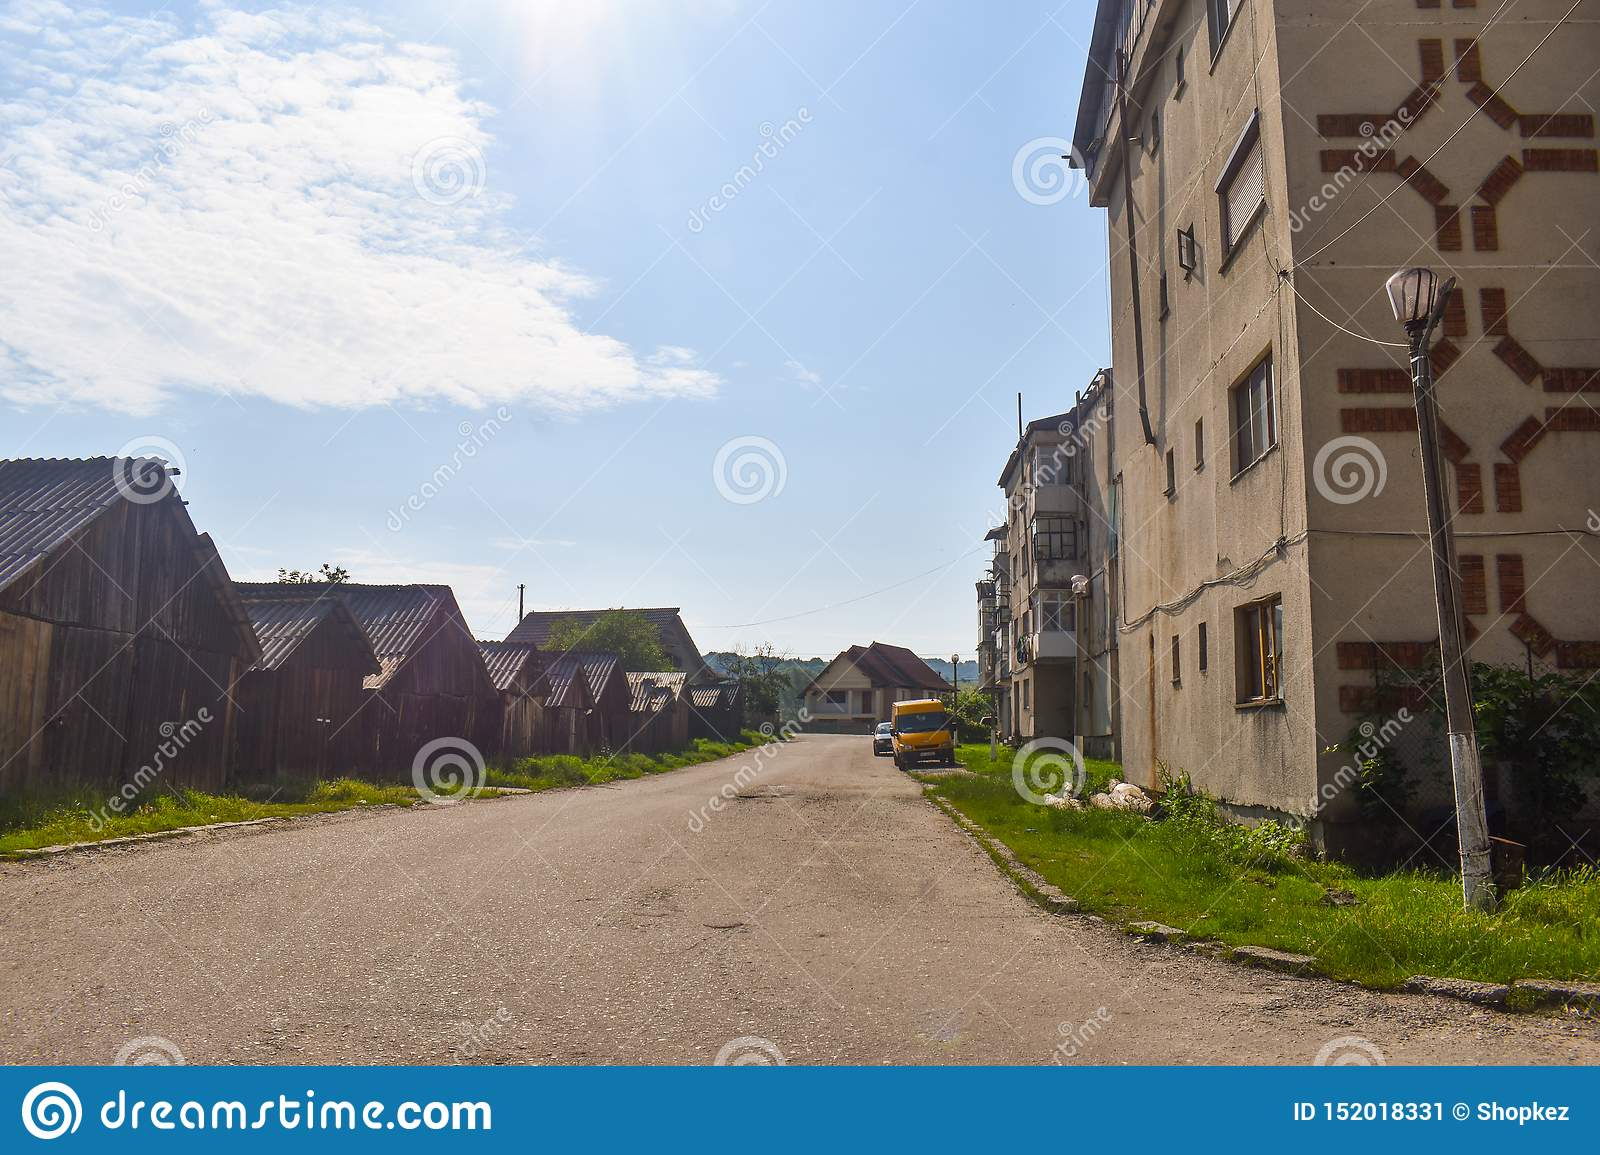 View of the communist blocks and urban decay in the small mining town Berbesti. Romania, Valcea County, Berbesti Alunu 20.06.2019